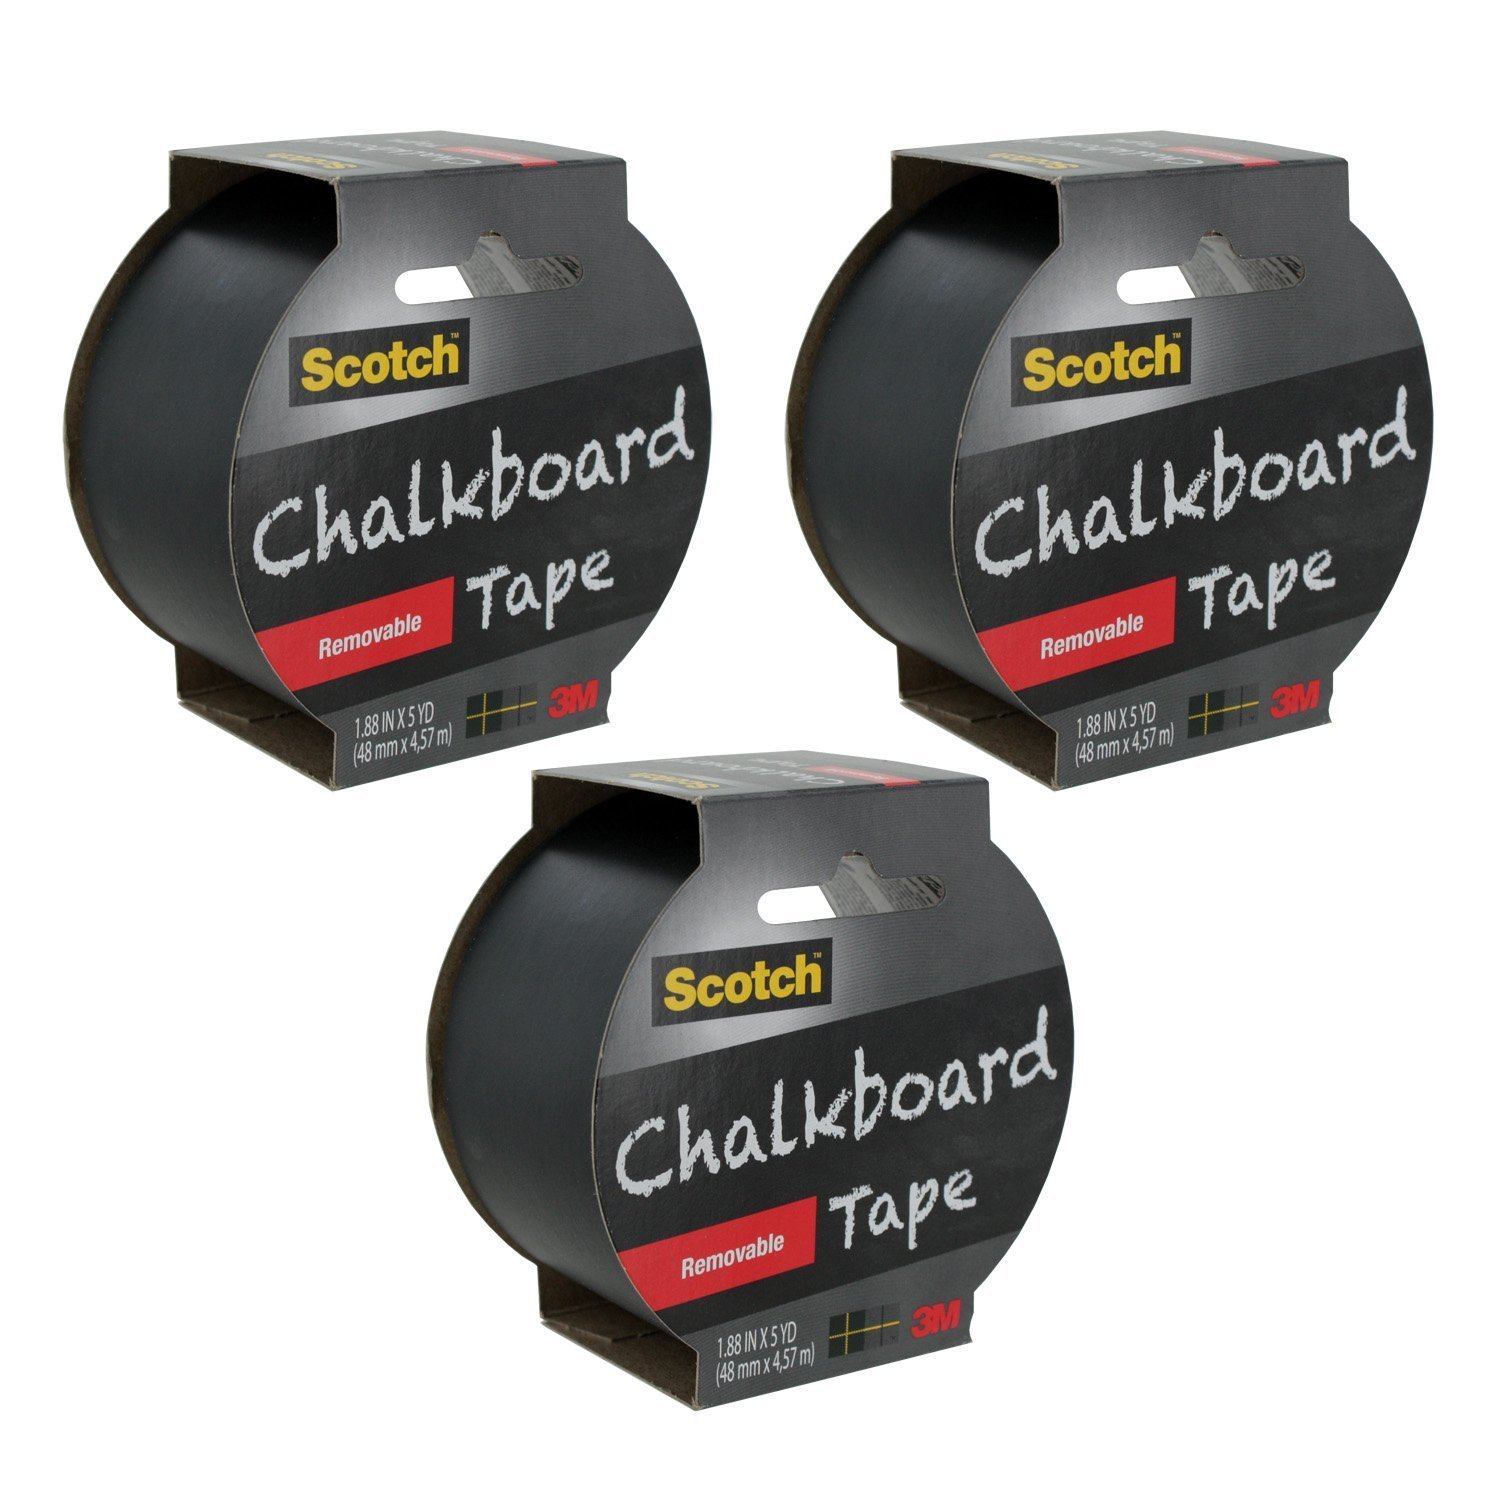 Scotch Chalkboard Tape, 1.88-Inch x 5-Yard, 3-Pack